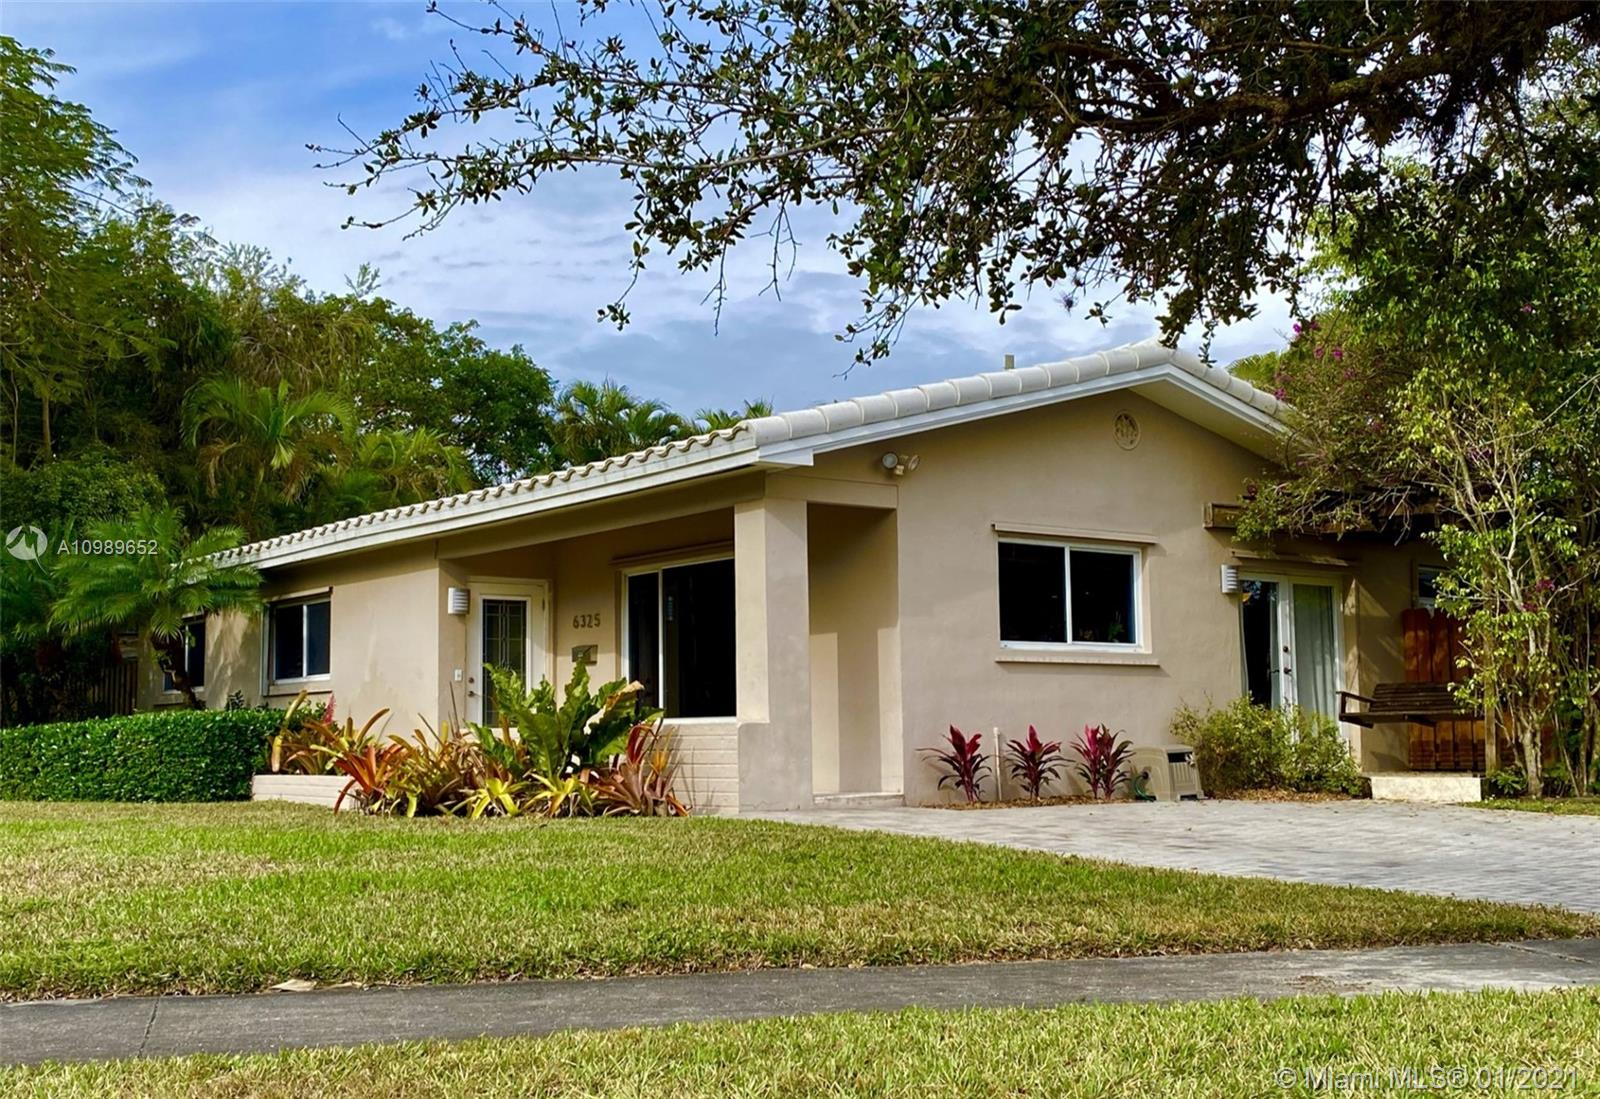 Beautiful corner-lot home in the Beverly Gardens area, between Dante Fascell and Fuchs Park. Very quiet neighborhood, with little to no traffic. 3 BD/2BA with several open spaces including a dining room, living area and family room. Large master bedroom with updated en-suite bathroom and large walk-in closet. Great outdoor areas including a large covered deck, ample green space in a fenced yard, and a porch swing. Recently replaced roof and deck.